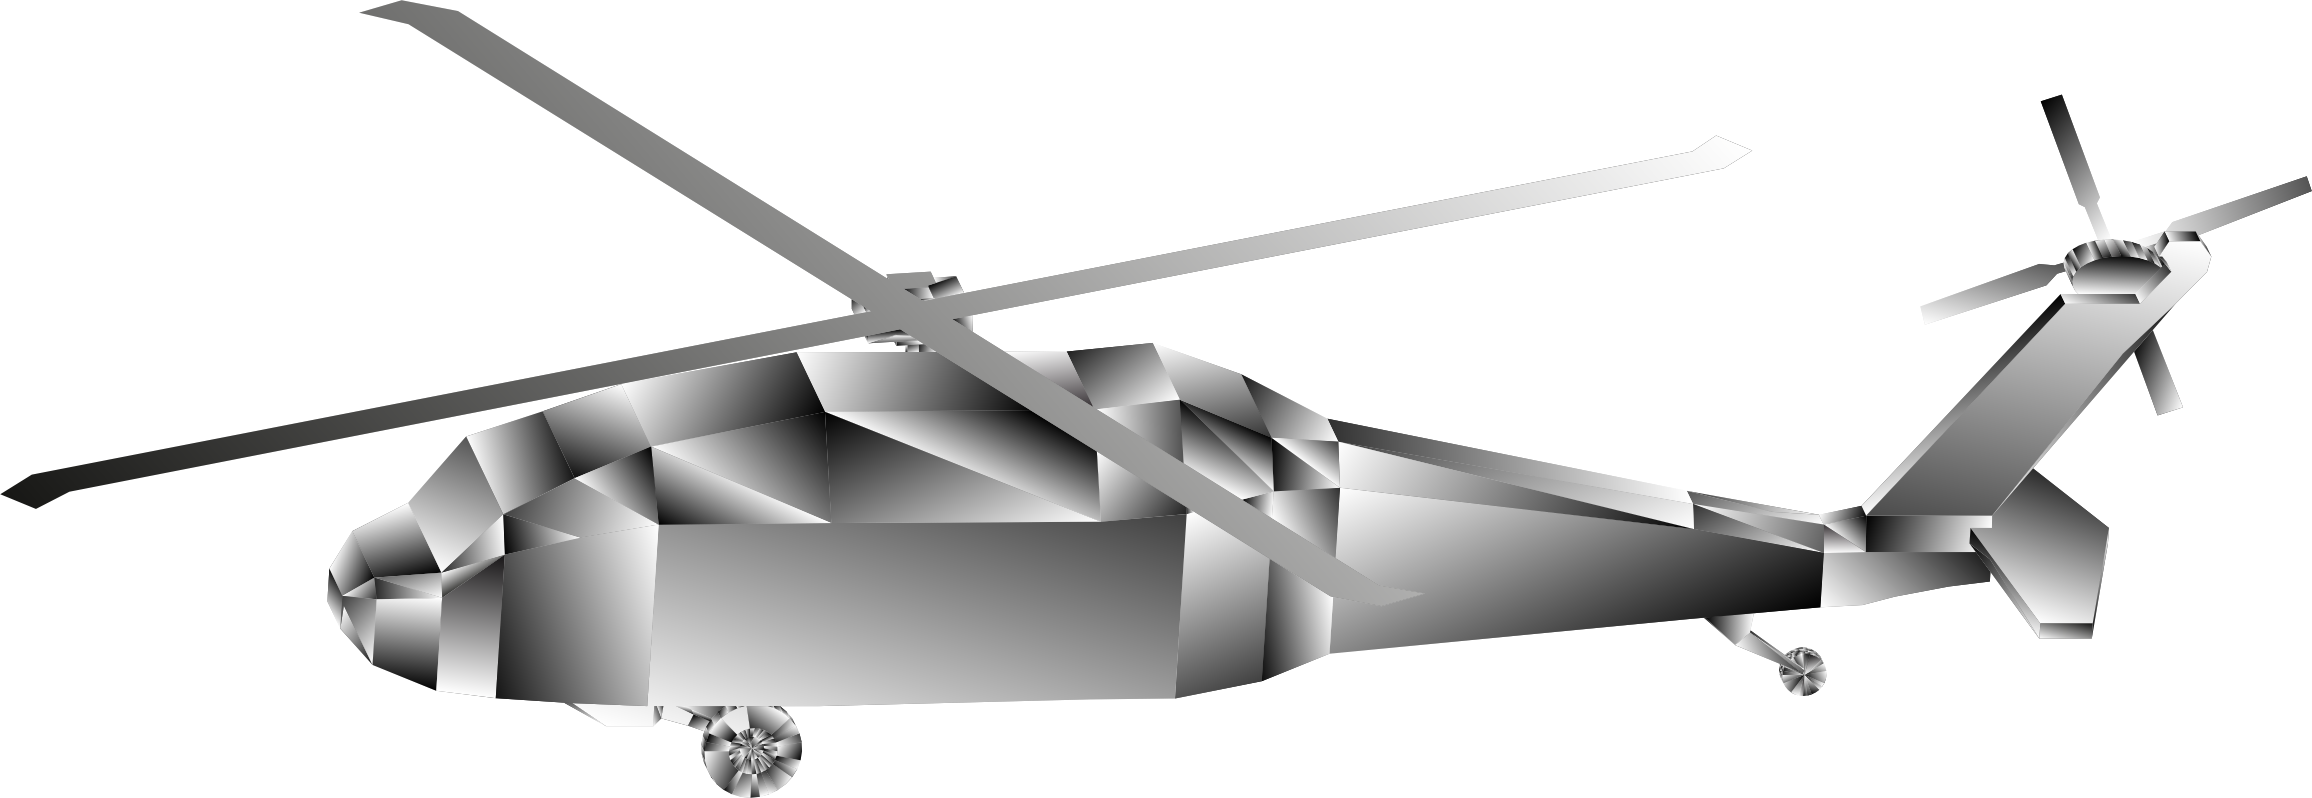 3D Low Poly Blackhawk Helicopter Grayscale 2 by GDJ